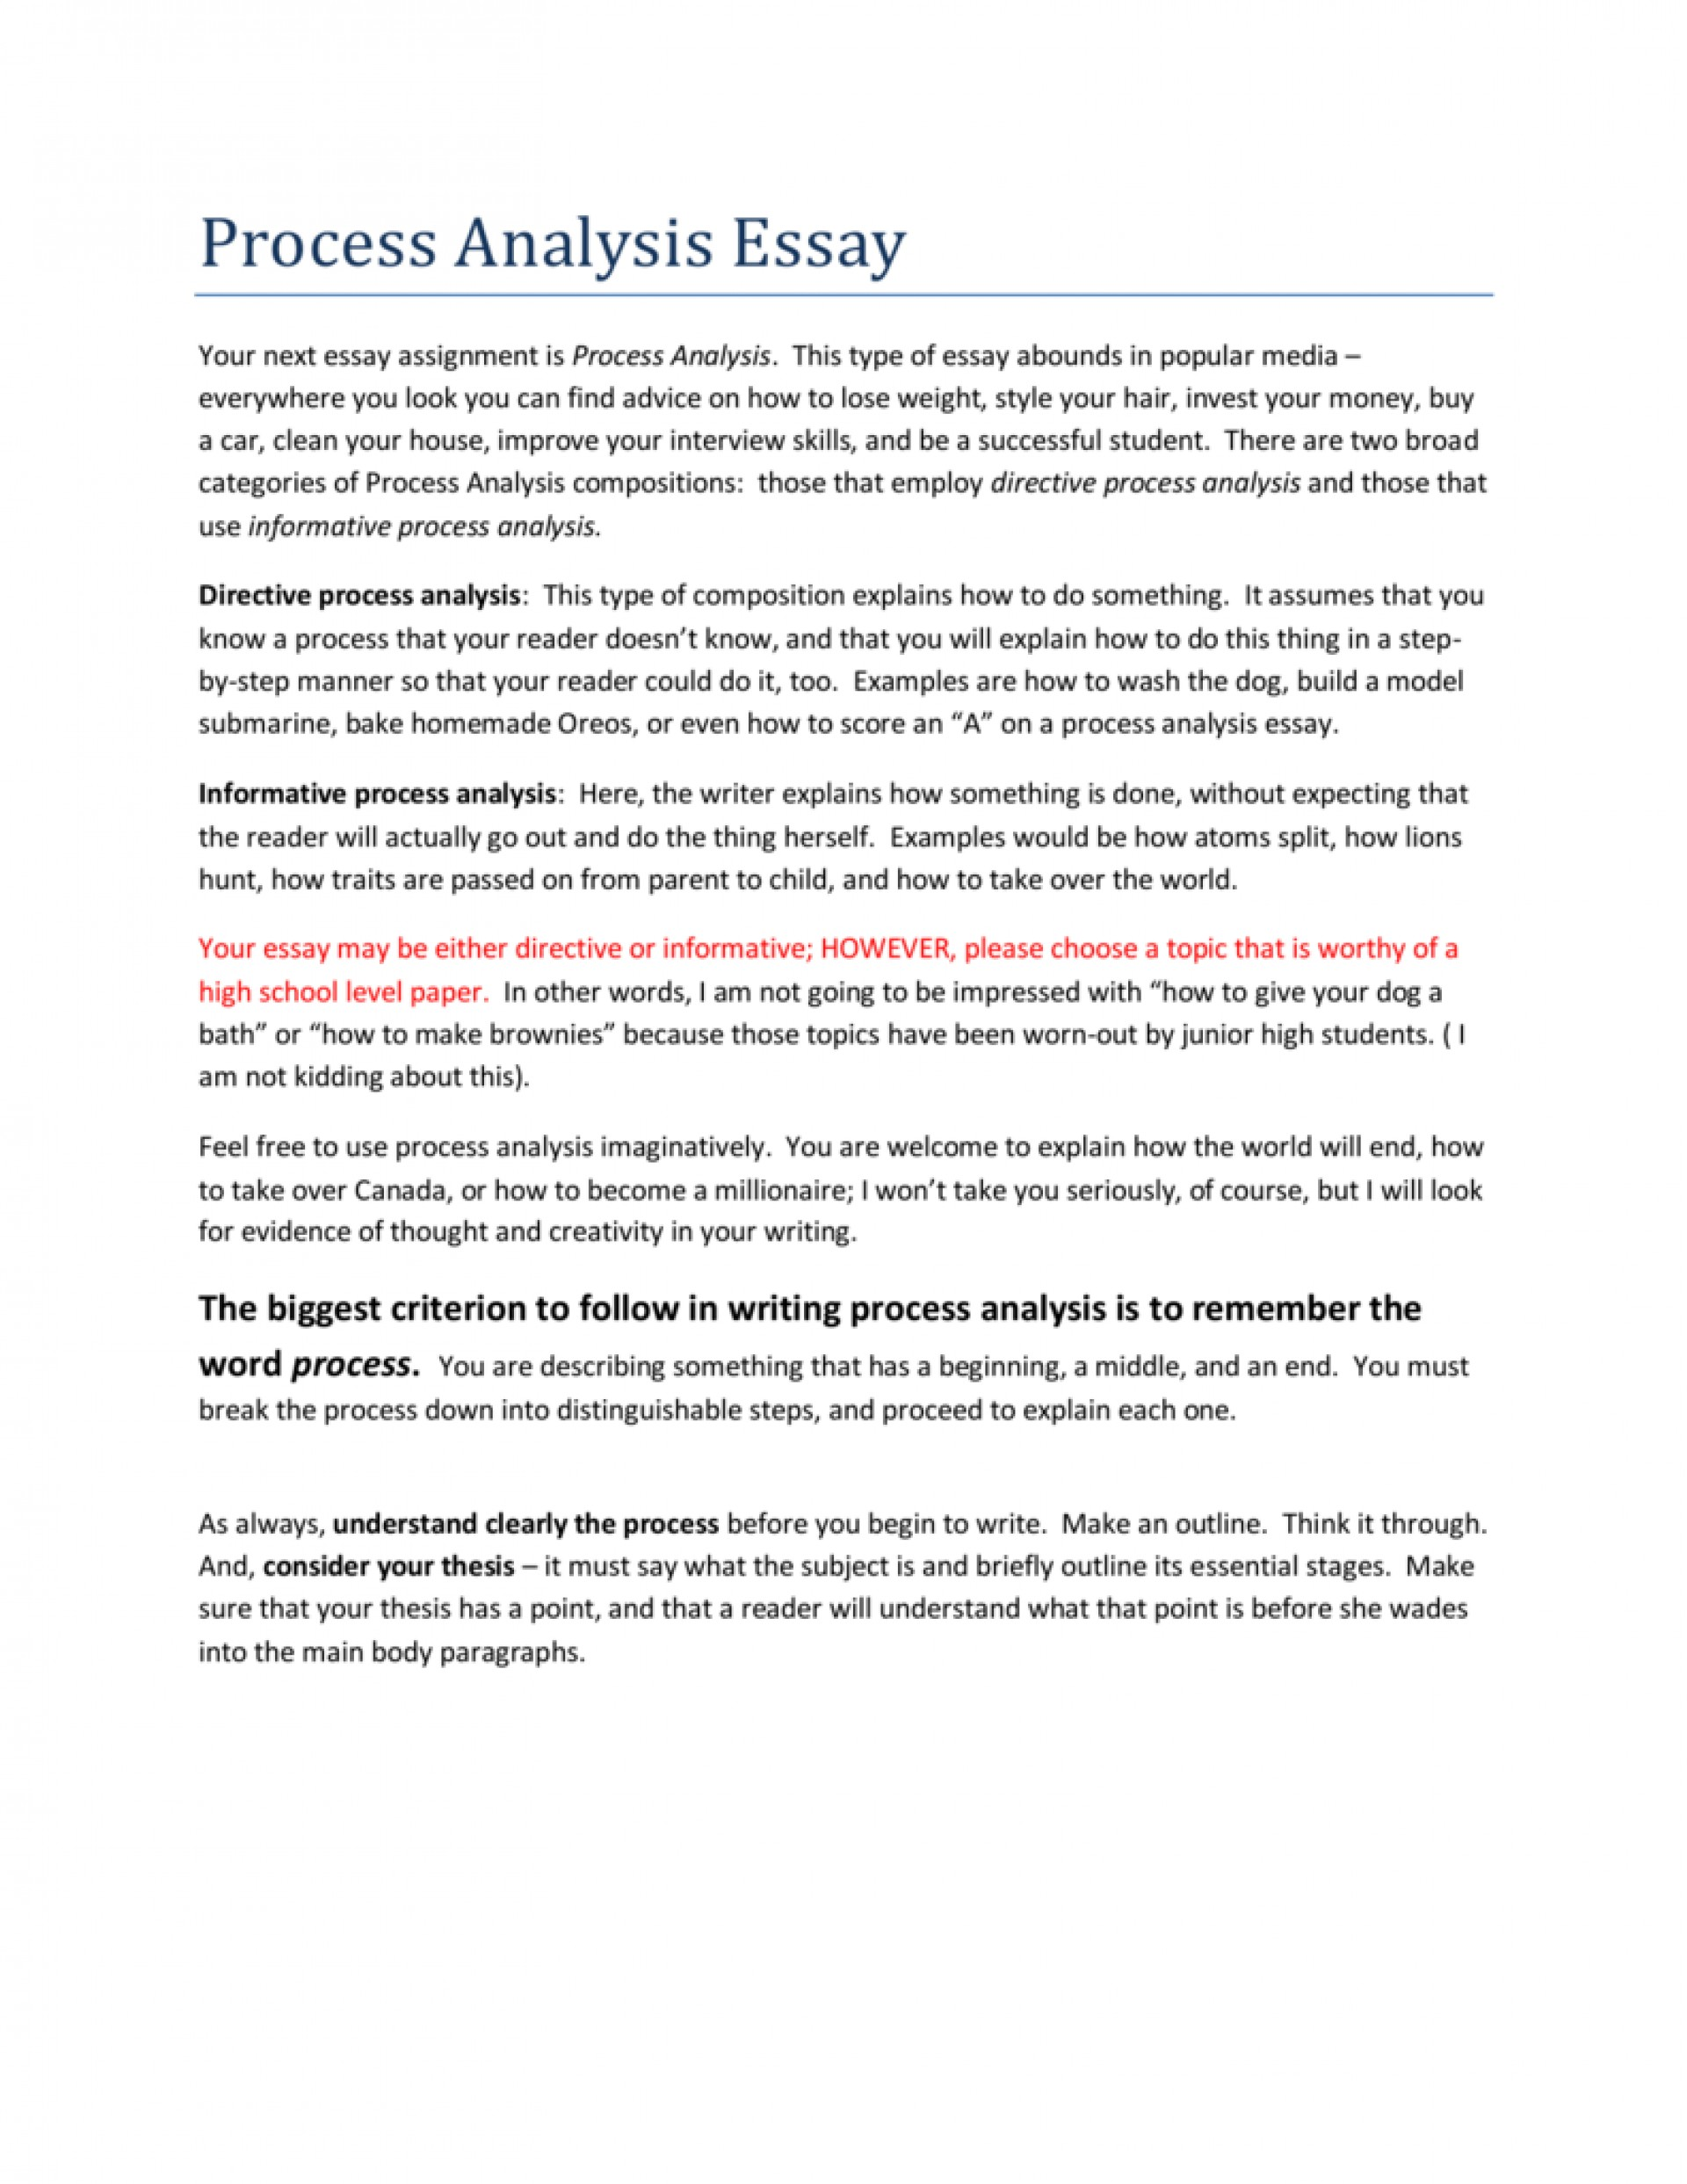 017 Essay Example 008757254 1 How To Write Top A Process Ielts Thesis Statement For Analysis 1920